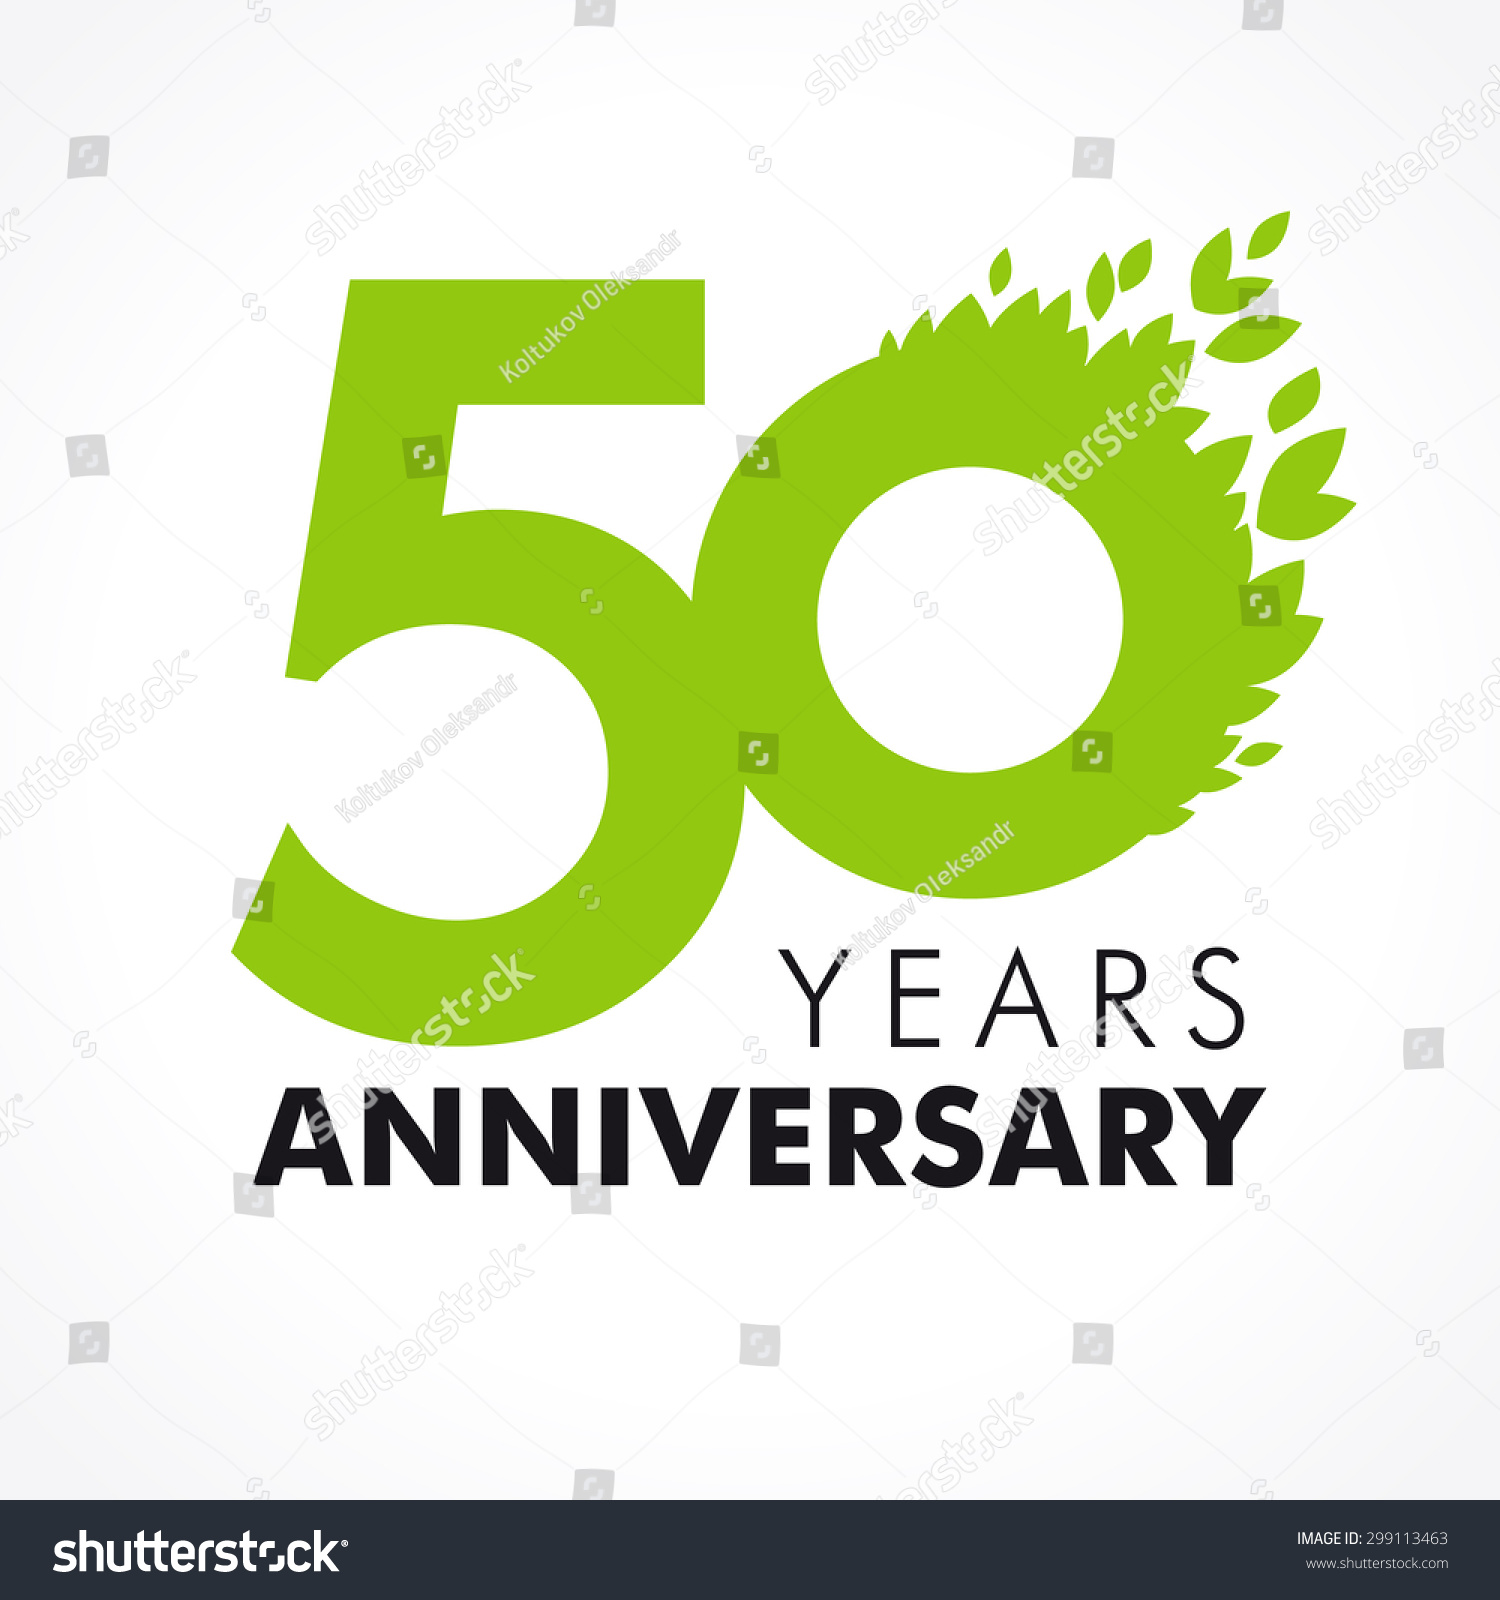 Template logo 50th anniversary as a number 5 with a green circle and leaves 50 anniversary leaves logo